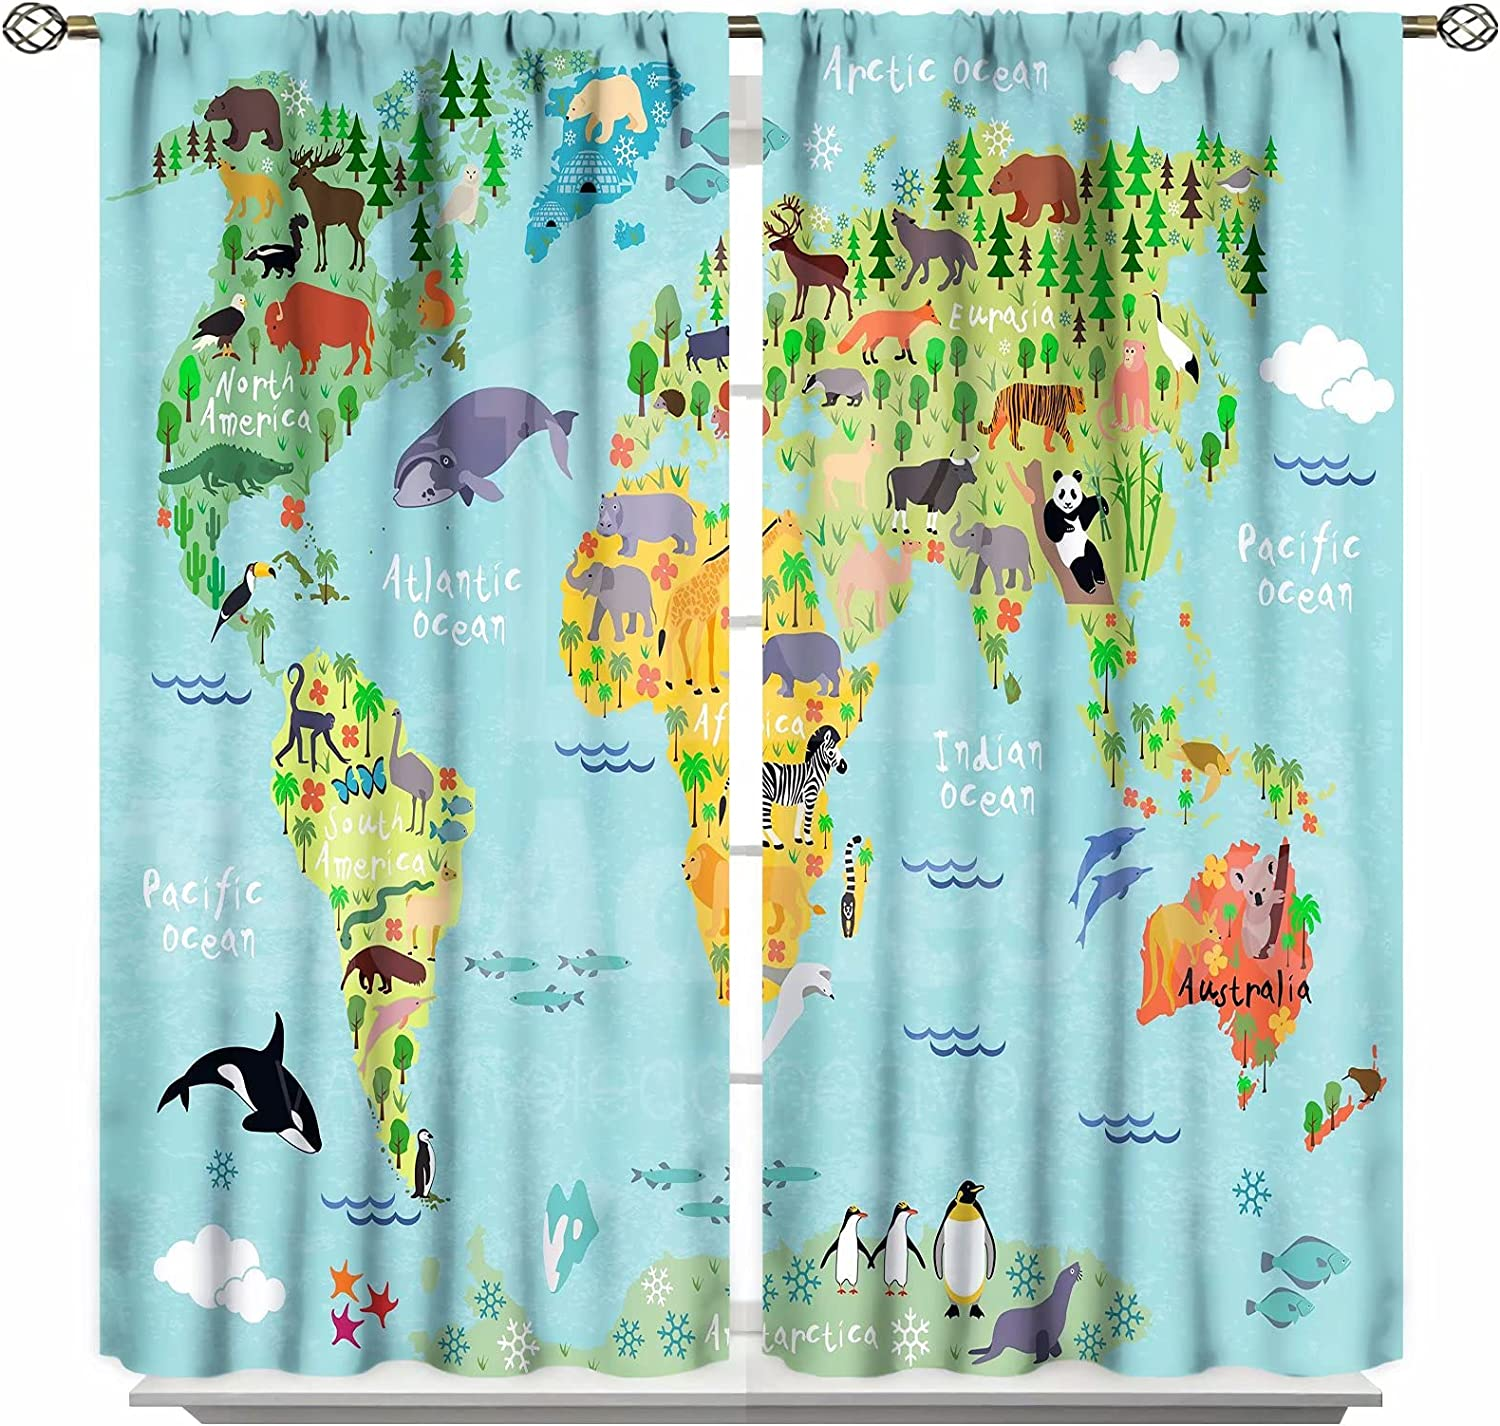 GY Animal Map of The World Virginia Beach Mall Forests discount for Cartoon Mountains Printed